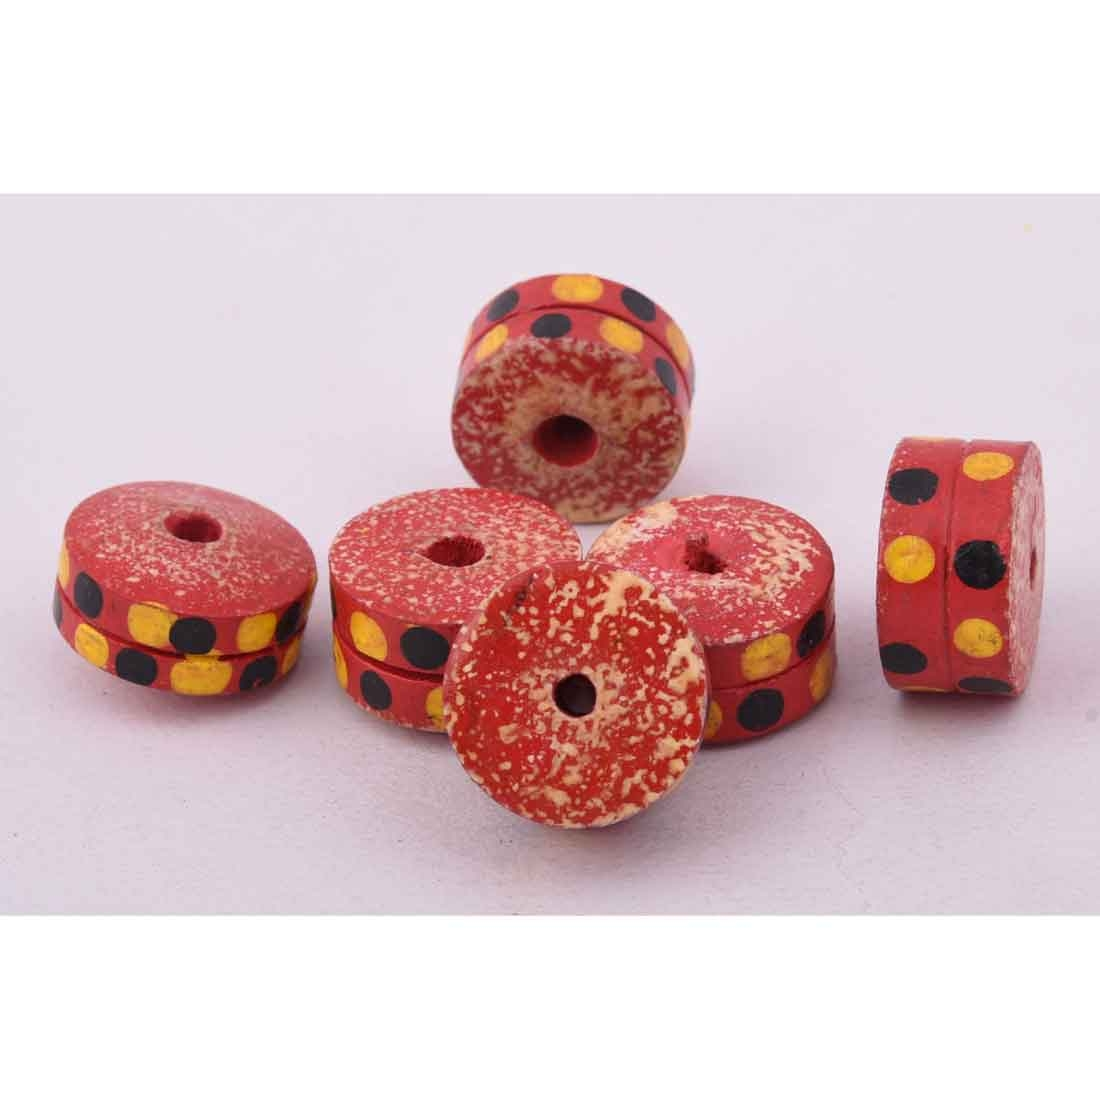 Beads India 1700090 Handcrafted Wooden Beads/Discounts Above 500 pcs